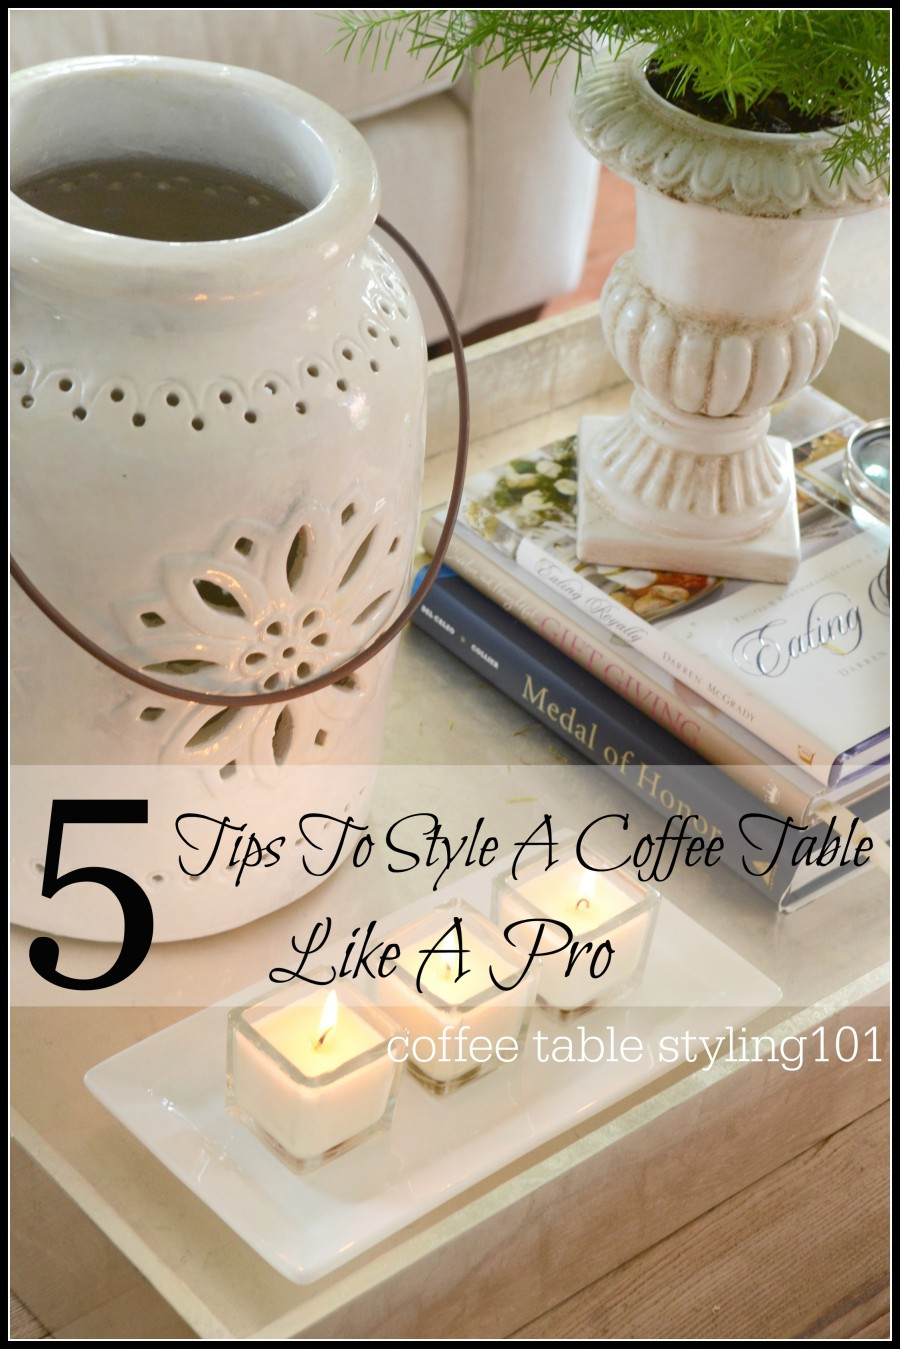 5 TIPS FOR STYLING A COFFEE TABLE LIKE A PRO-TITLE PAGE-stonegableblog